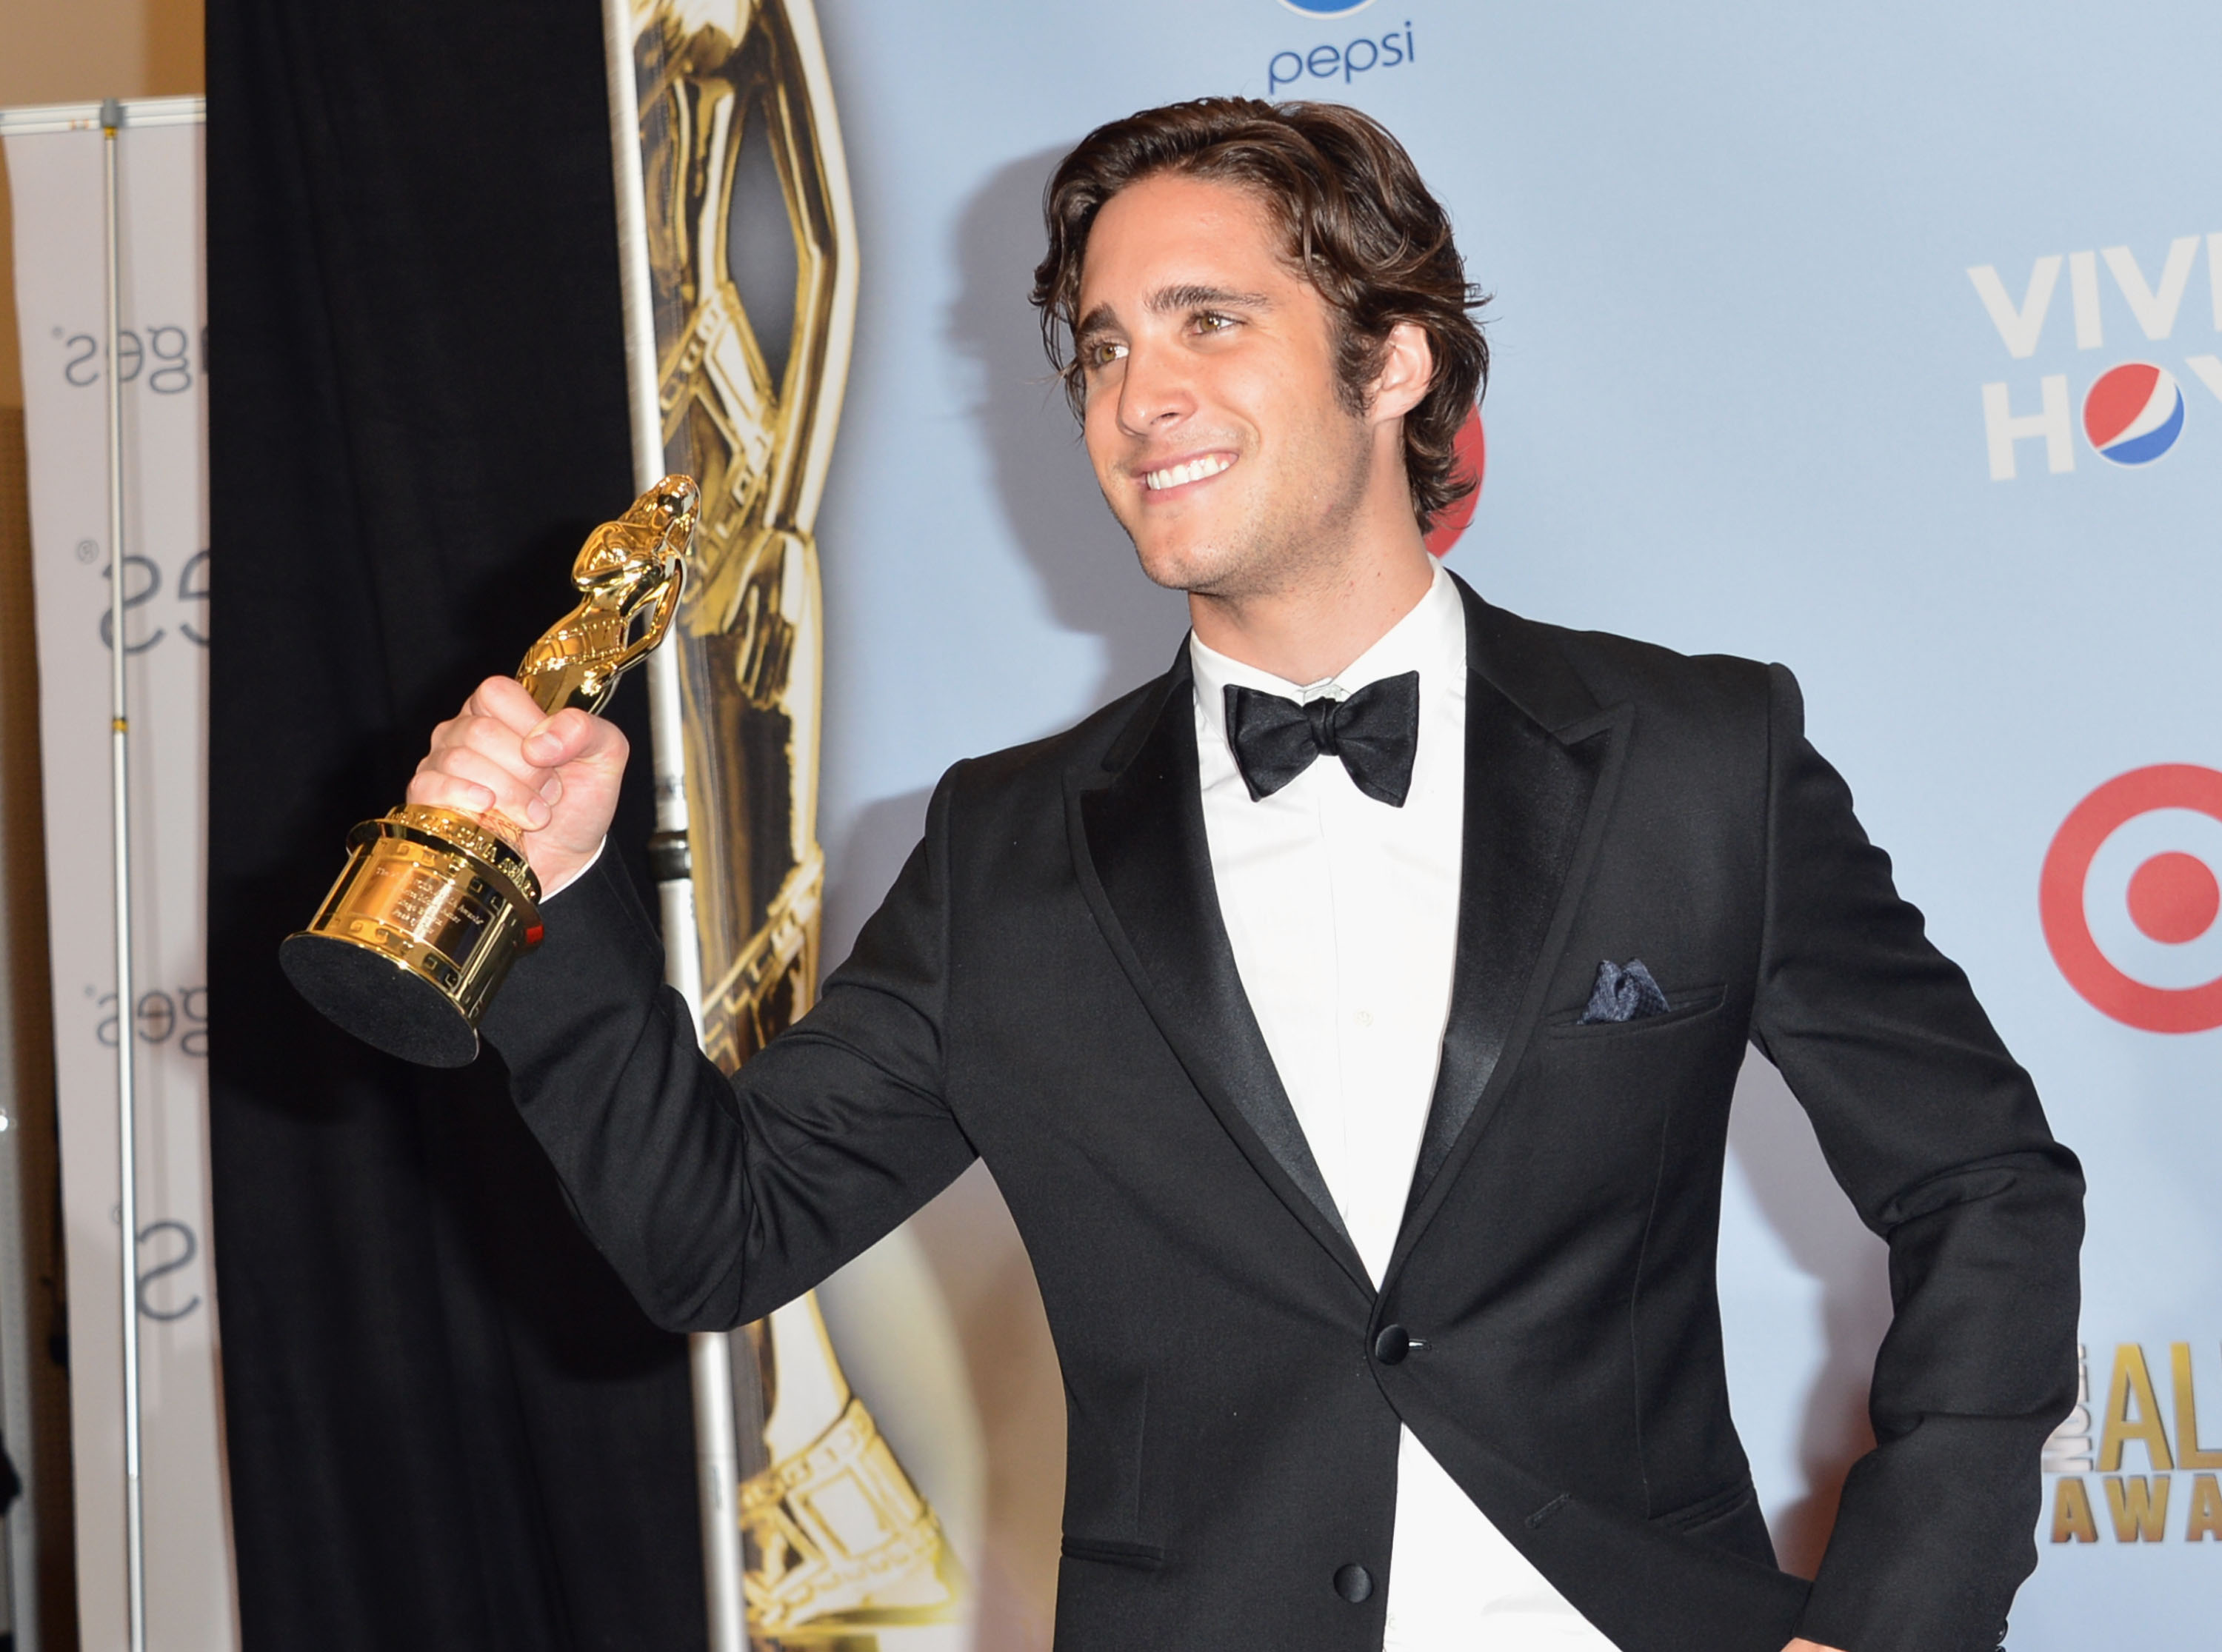 Diego Boneta showed off his award at the ALMA Awards in LA.